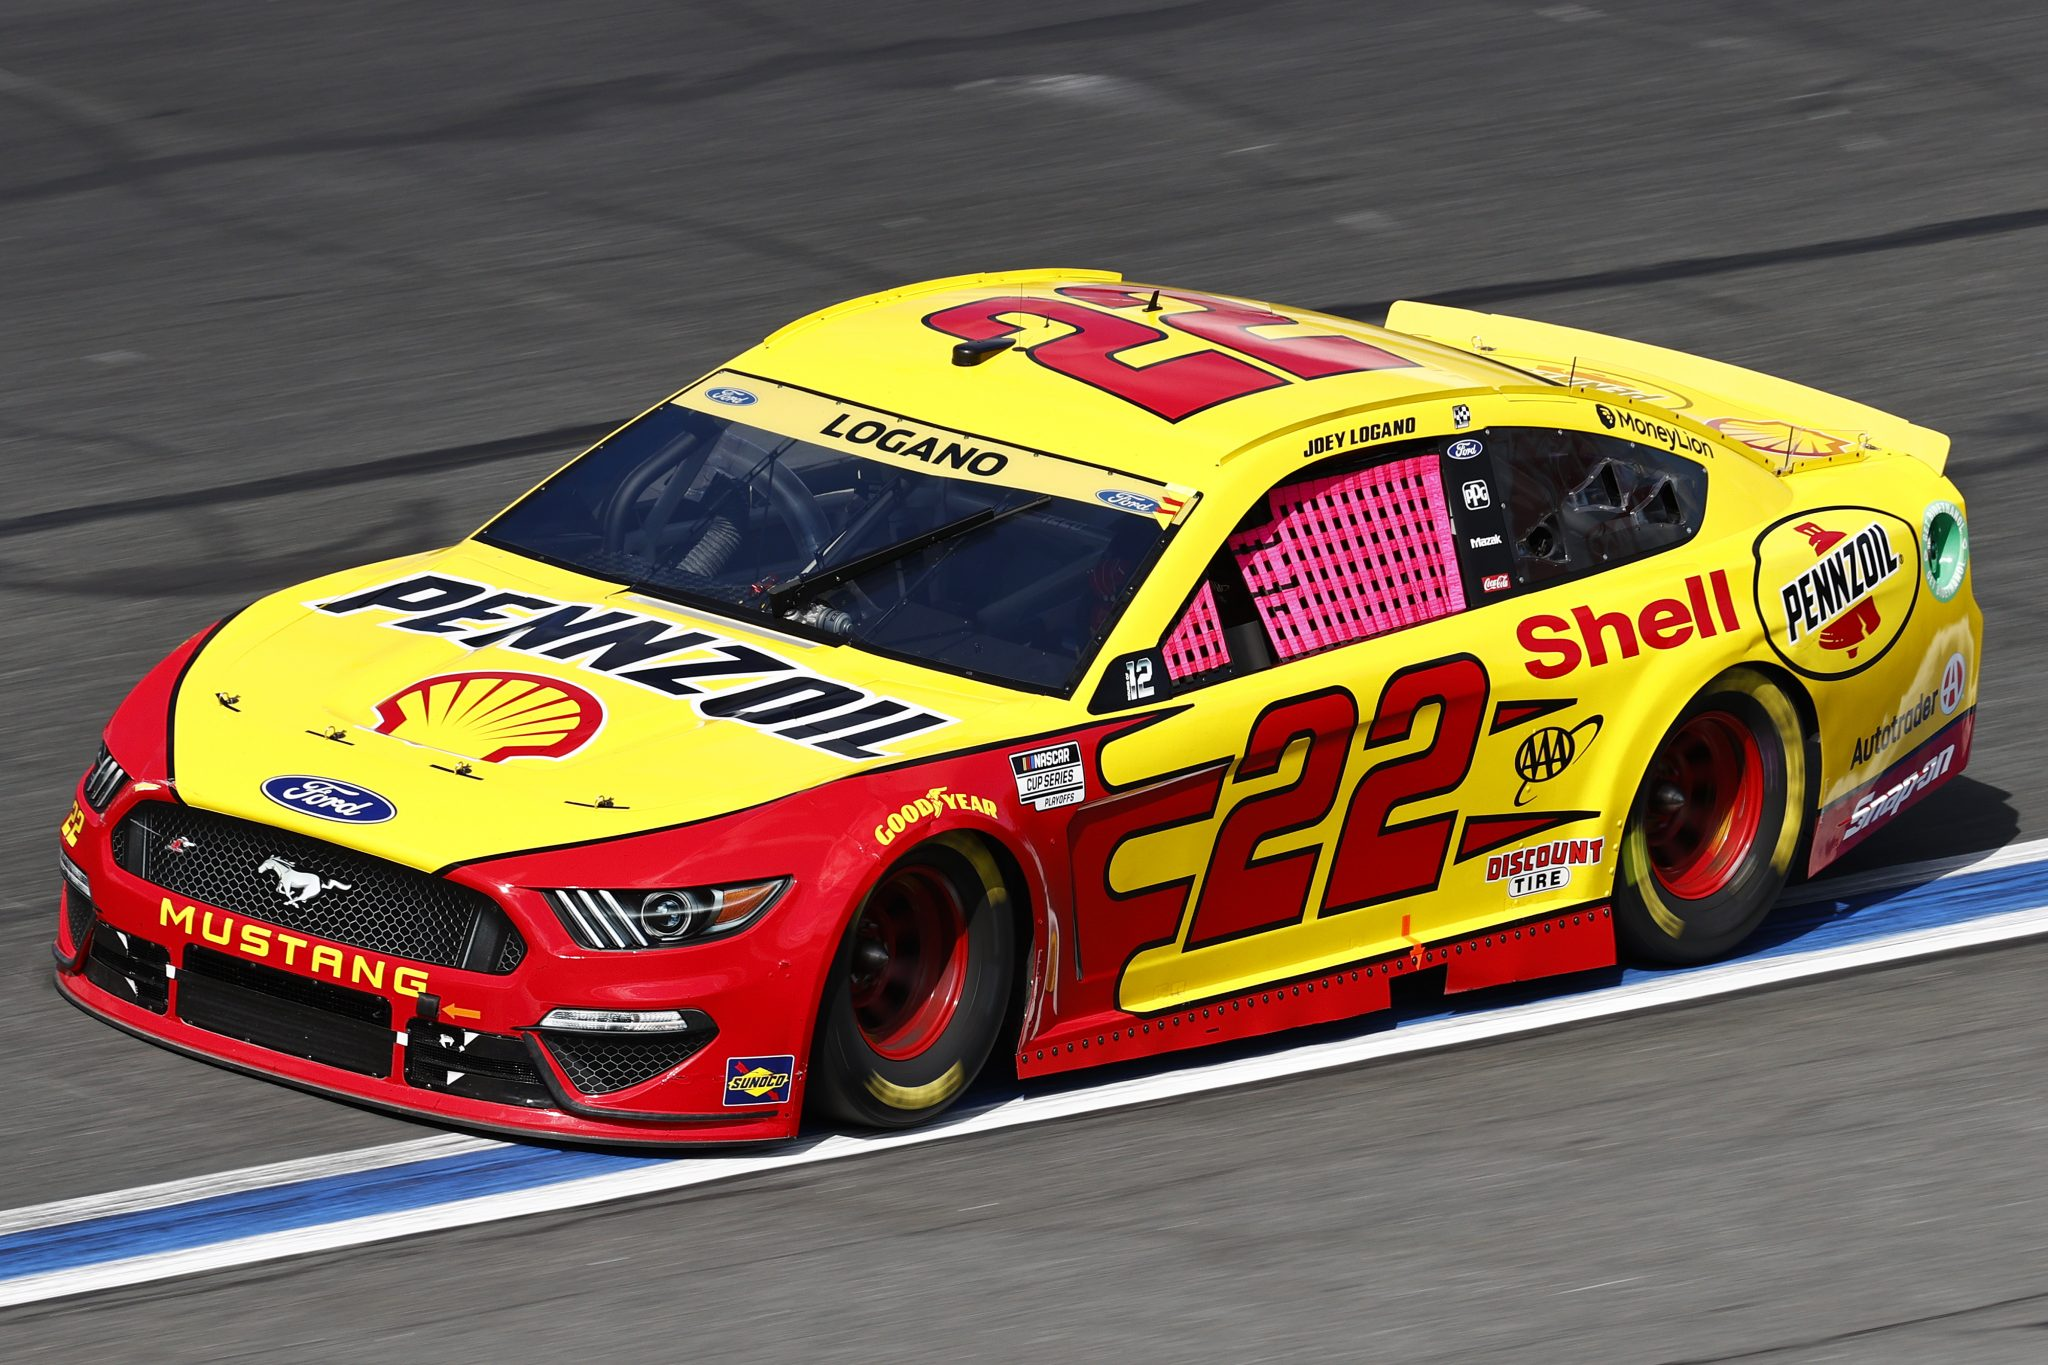 CONCORD, NORTH CAROLINA - OCTOBER 10: Joey Logano, driver of the #22 Shell Pennzoil Ford, drives during the NASCAR Cup Series Bank of America ROVAL 400 at Charlotte Motor Speedway on October 10, 2021 in Concord, North Carolina. (Photo by Jared C. Tilton/Getty Images) | Getty Images